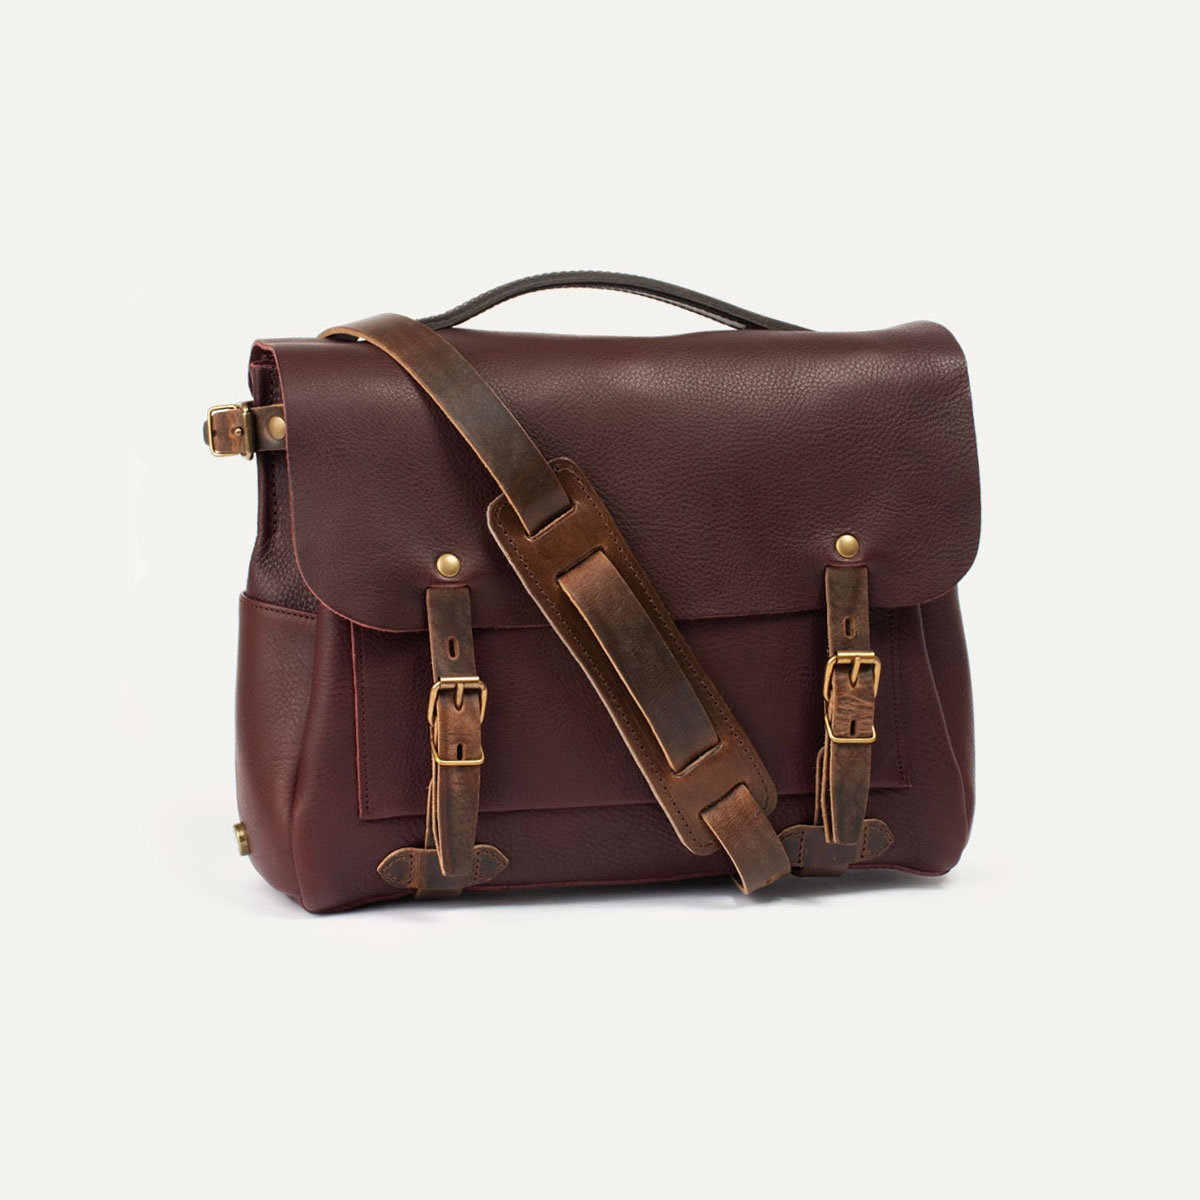 1c5fdc1334 Sac Postier Eclair I Sac Besace Messenger cuir Homme